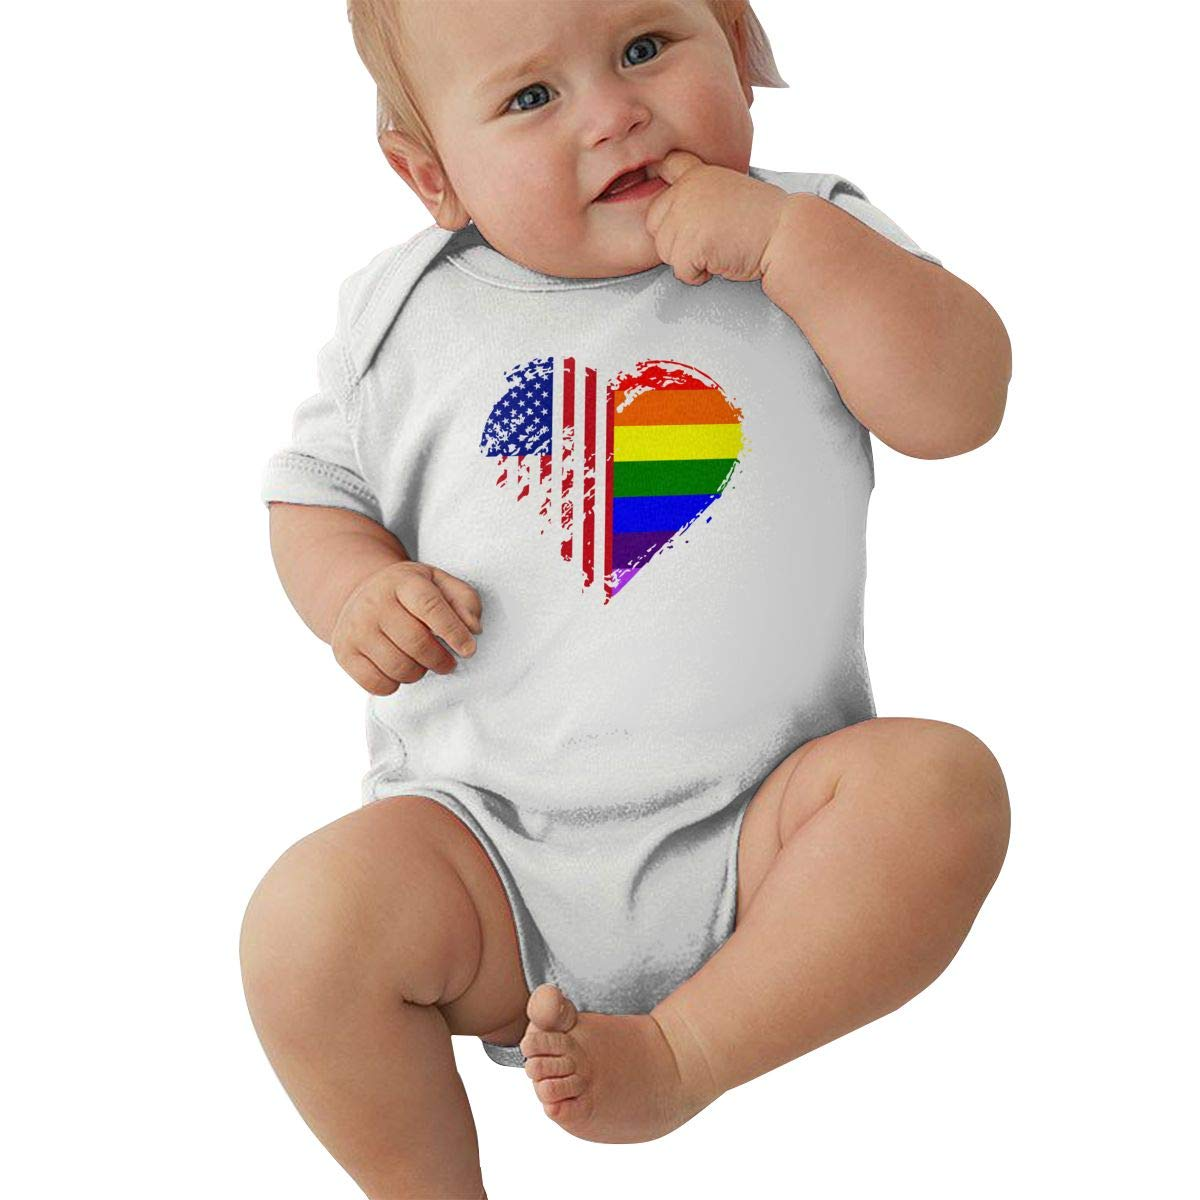 Mri-le2 Newborn Baby Short Sleeve Jumpsuit Grungy LGBT American Flag Heart Toddler Jumpsuit